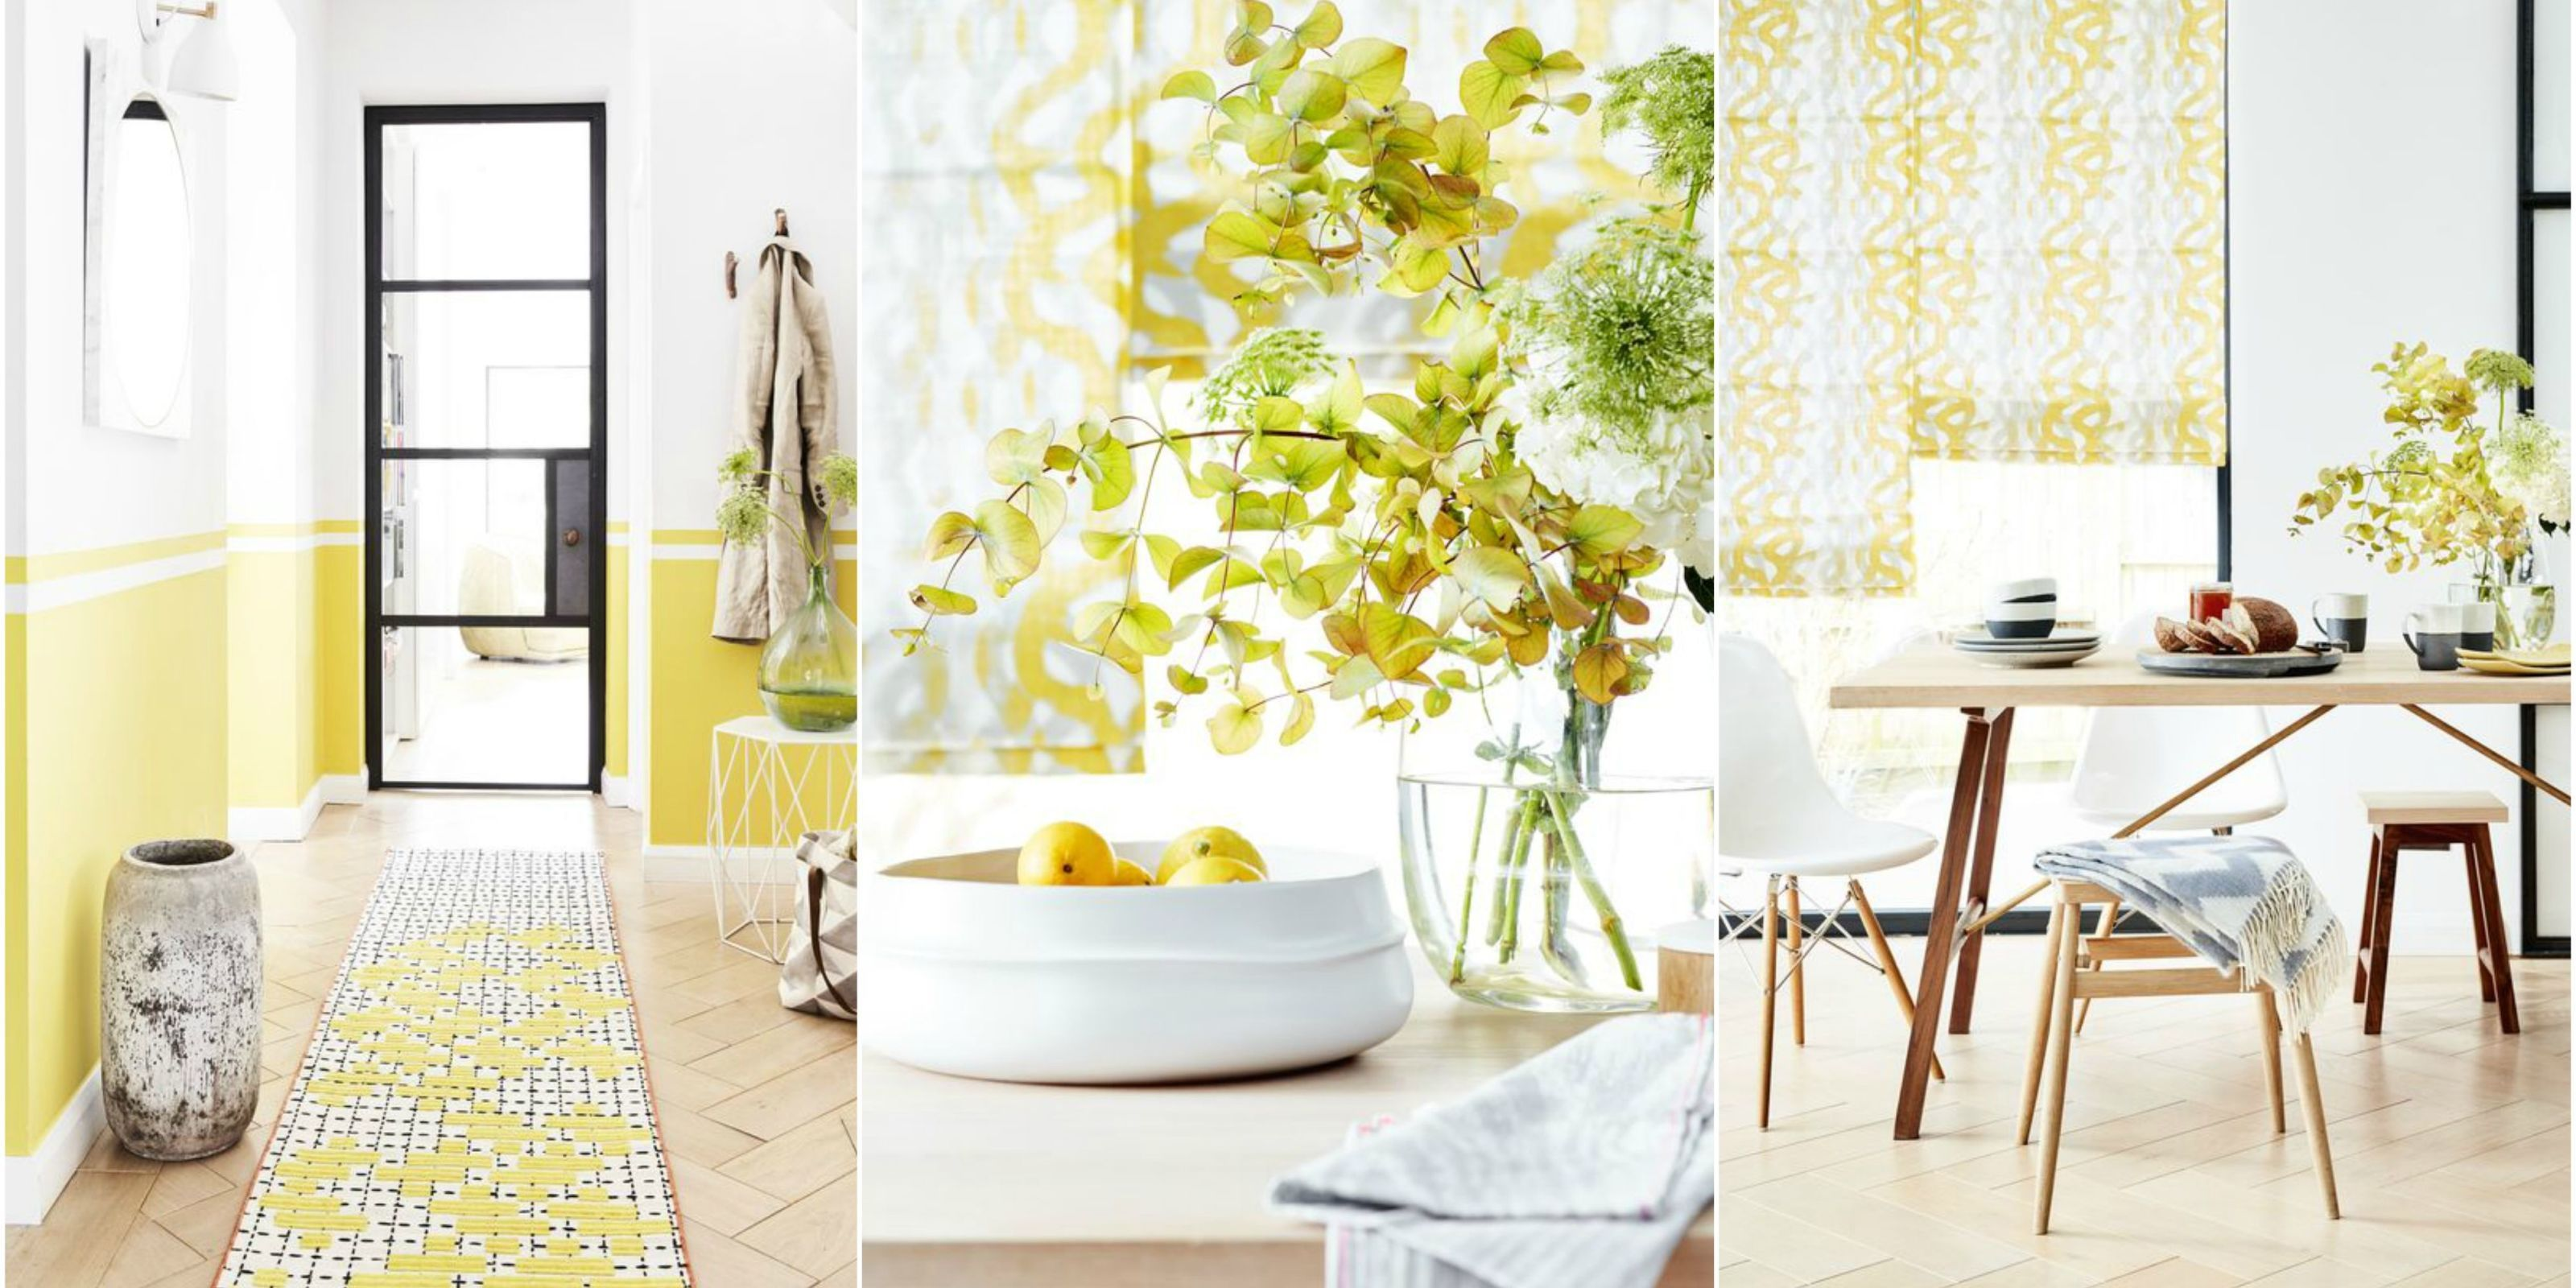 Decorating With Yellow. Styling By Lorraine Dawkins.